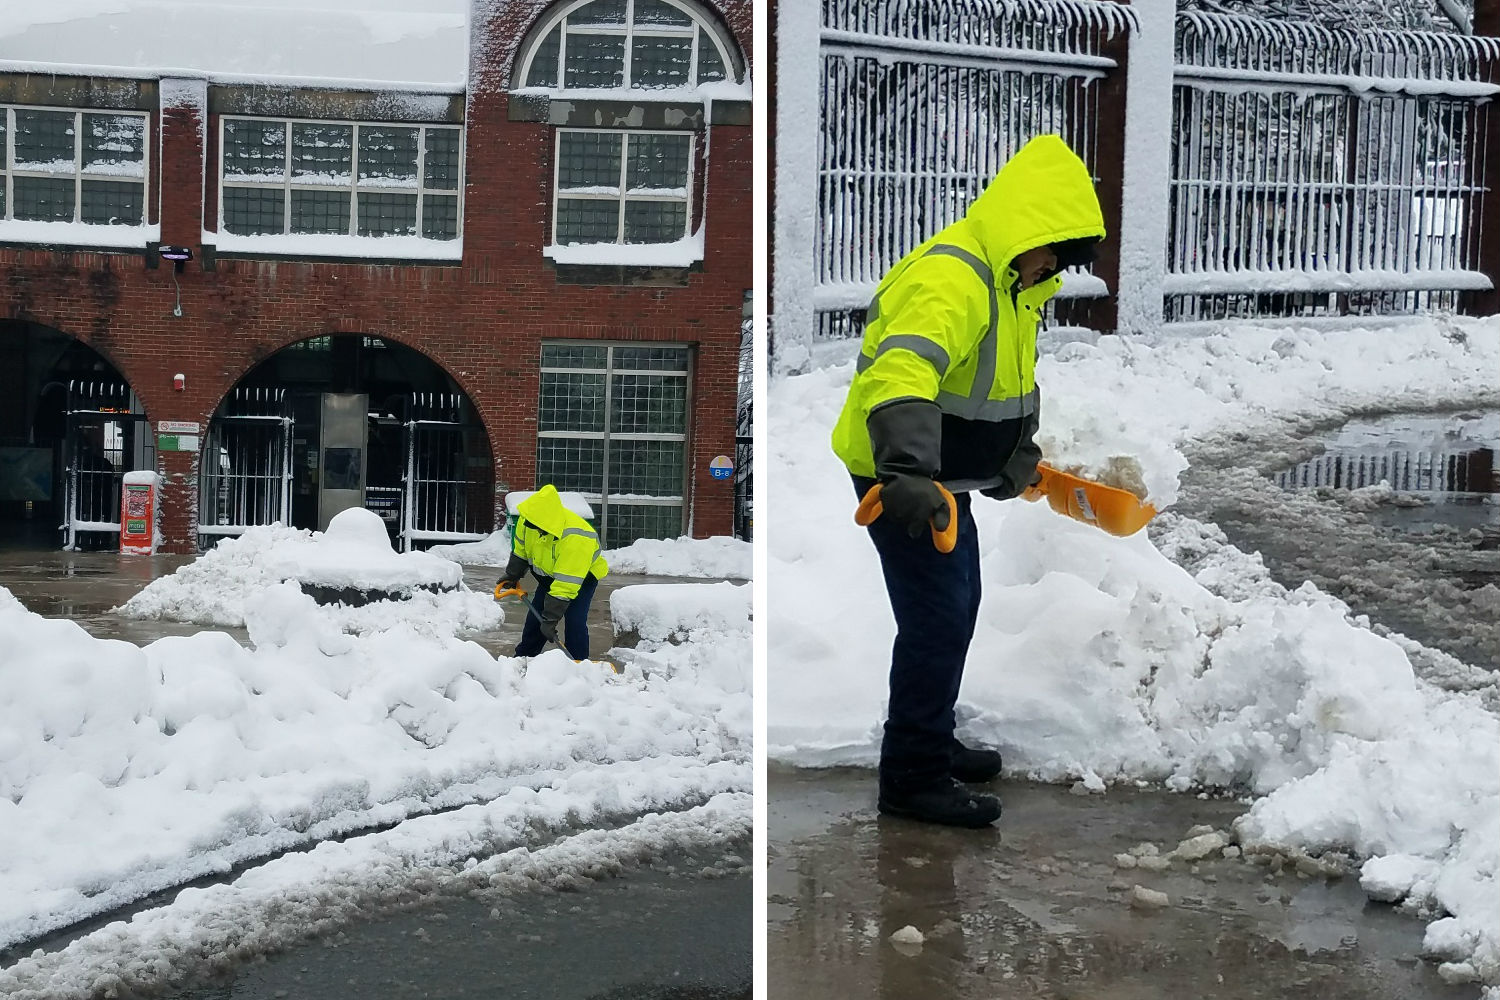 A crewperson shovels snow outside a station on the Blue Line. The first photo is a far shot, and the second one is a closeup.